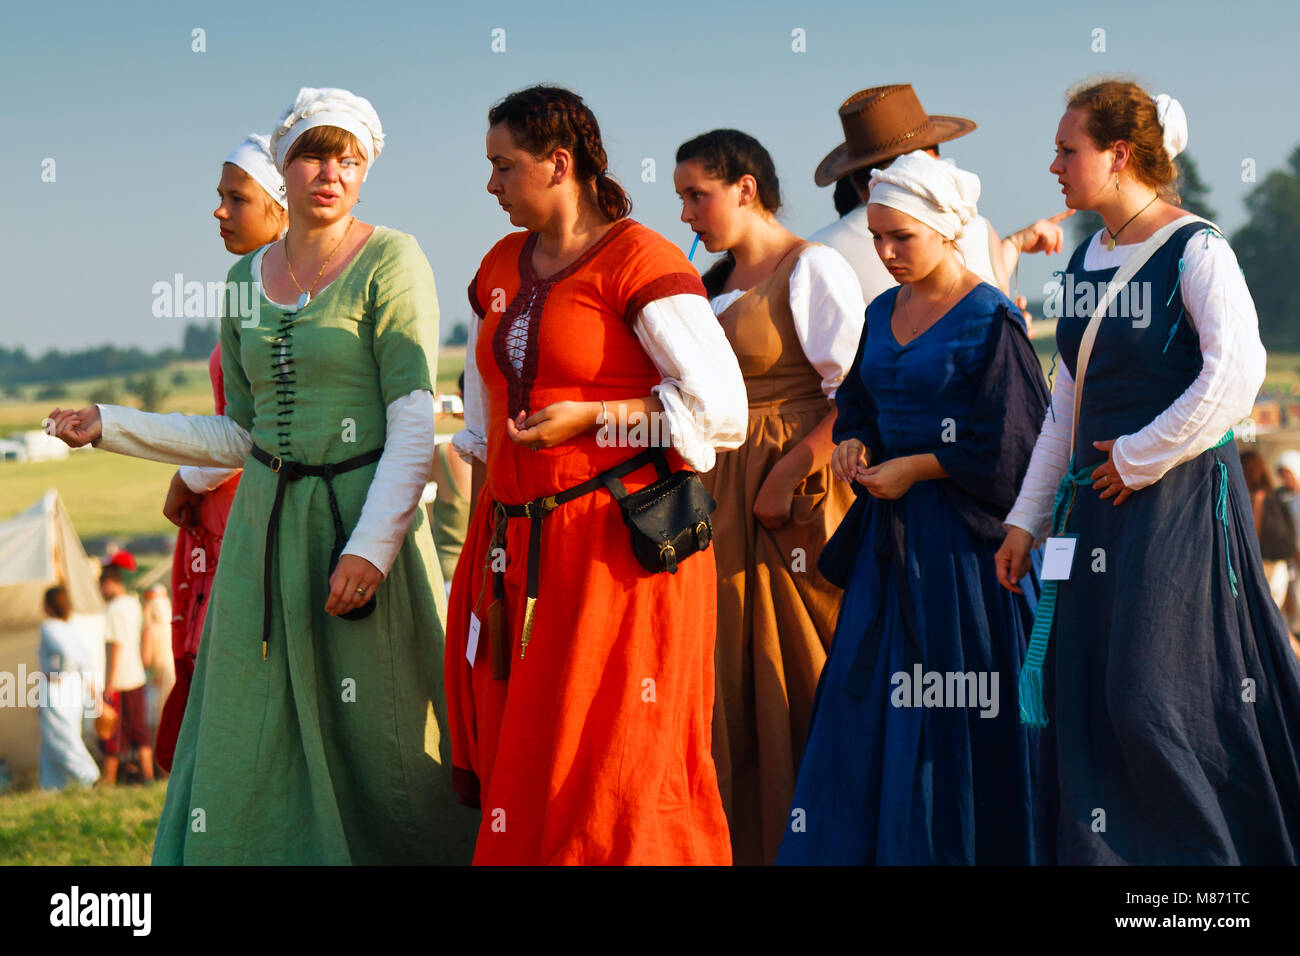 Medieval women costumes during Battle of Grunwald 601th anniversary, 4000 reenactors,1200 knights, near 20k viewers. Stock Photo